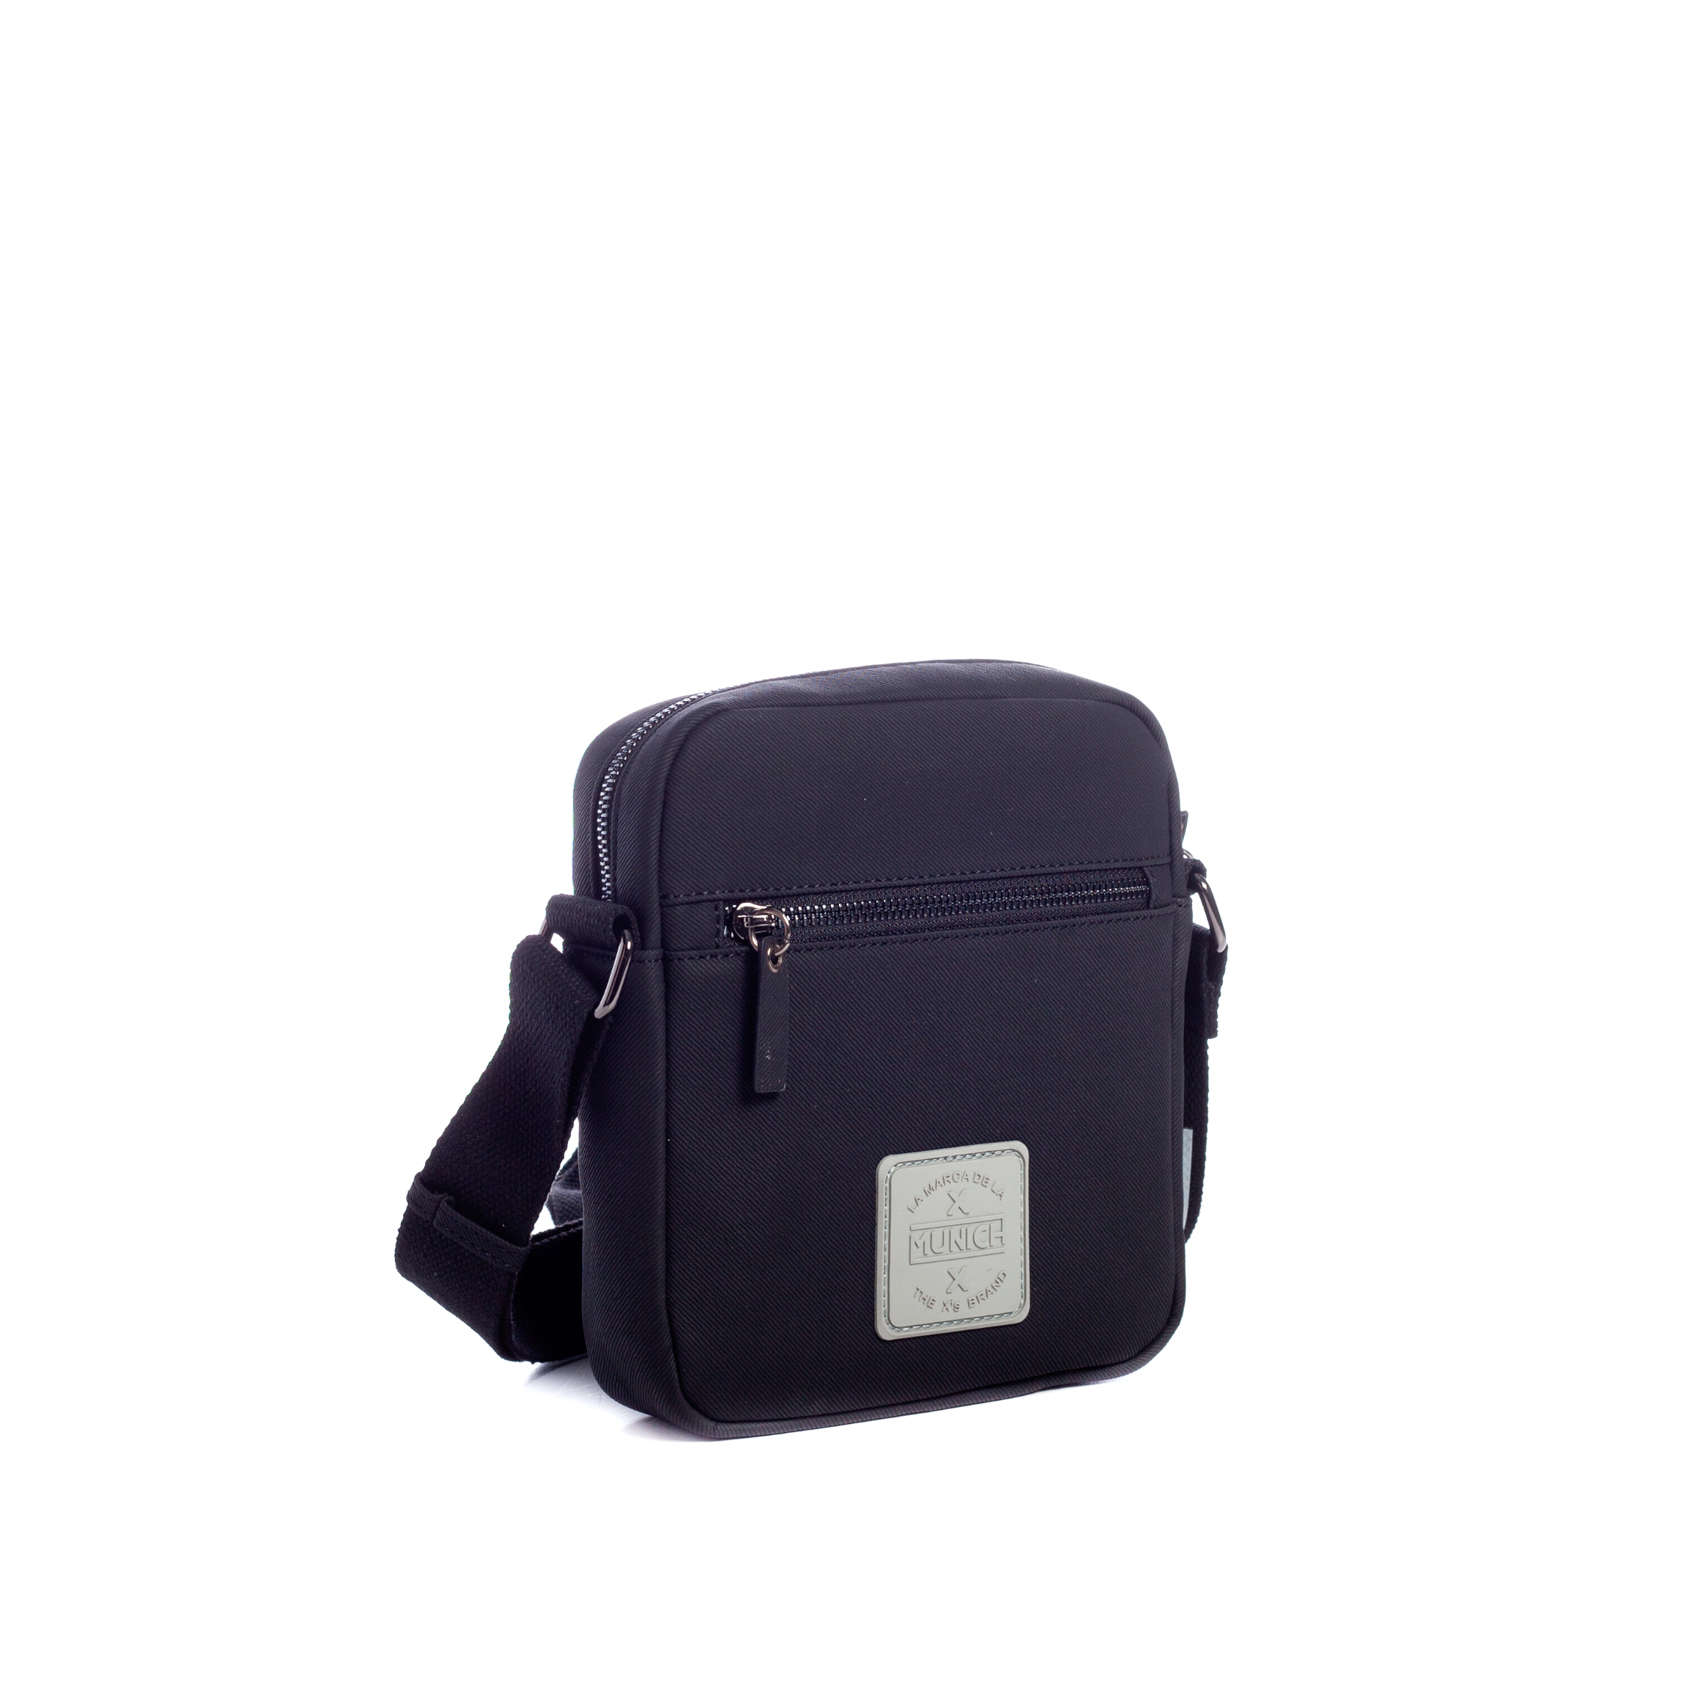 MUNICH SURVIVE CROSSBODY 7010432